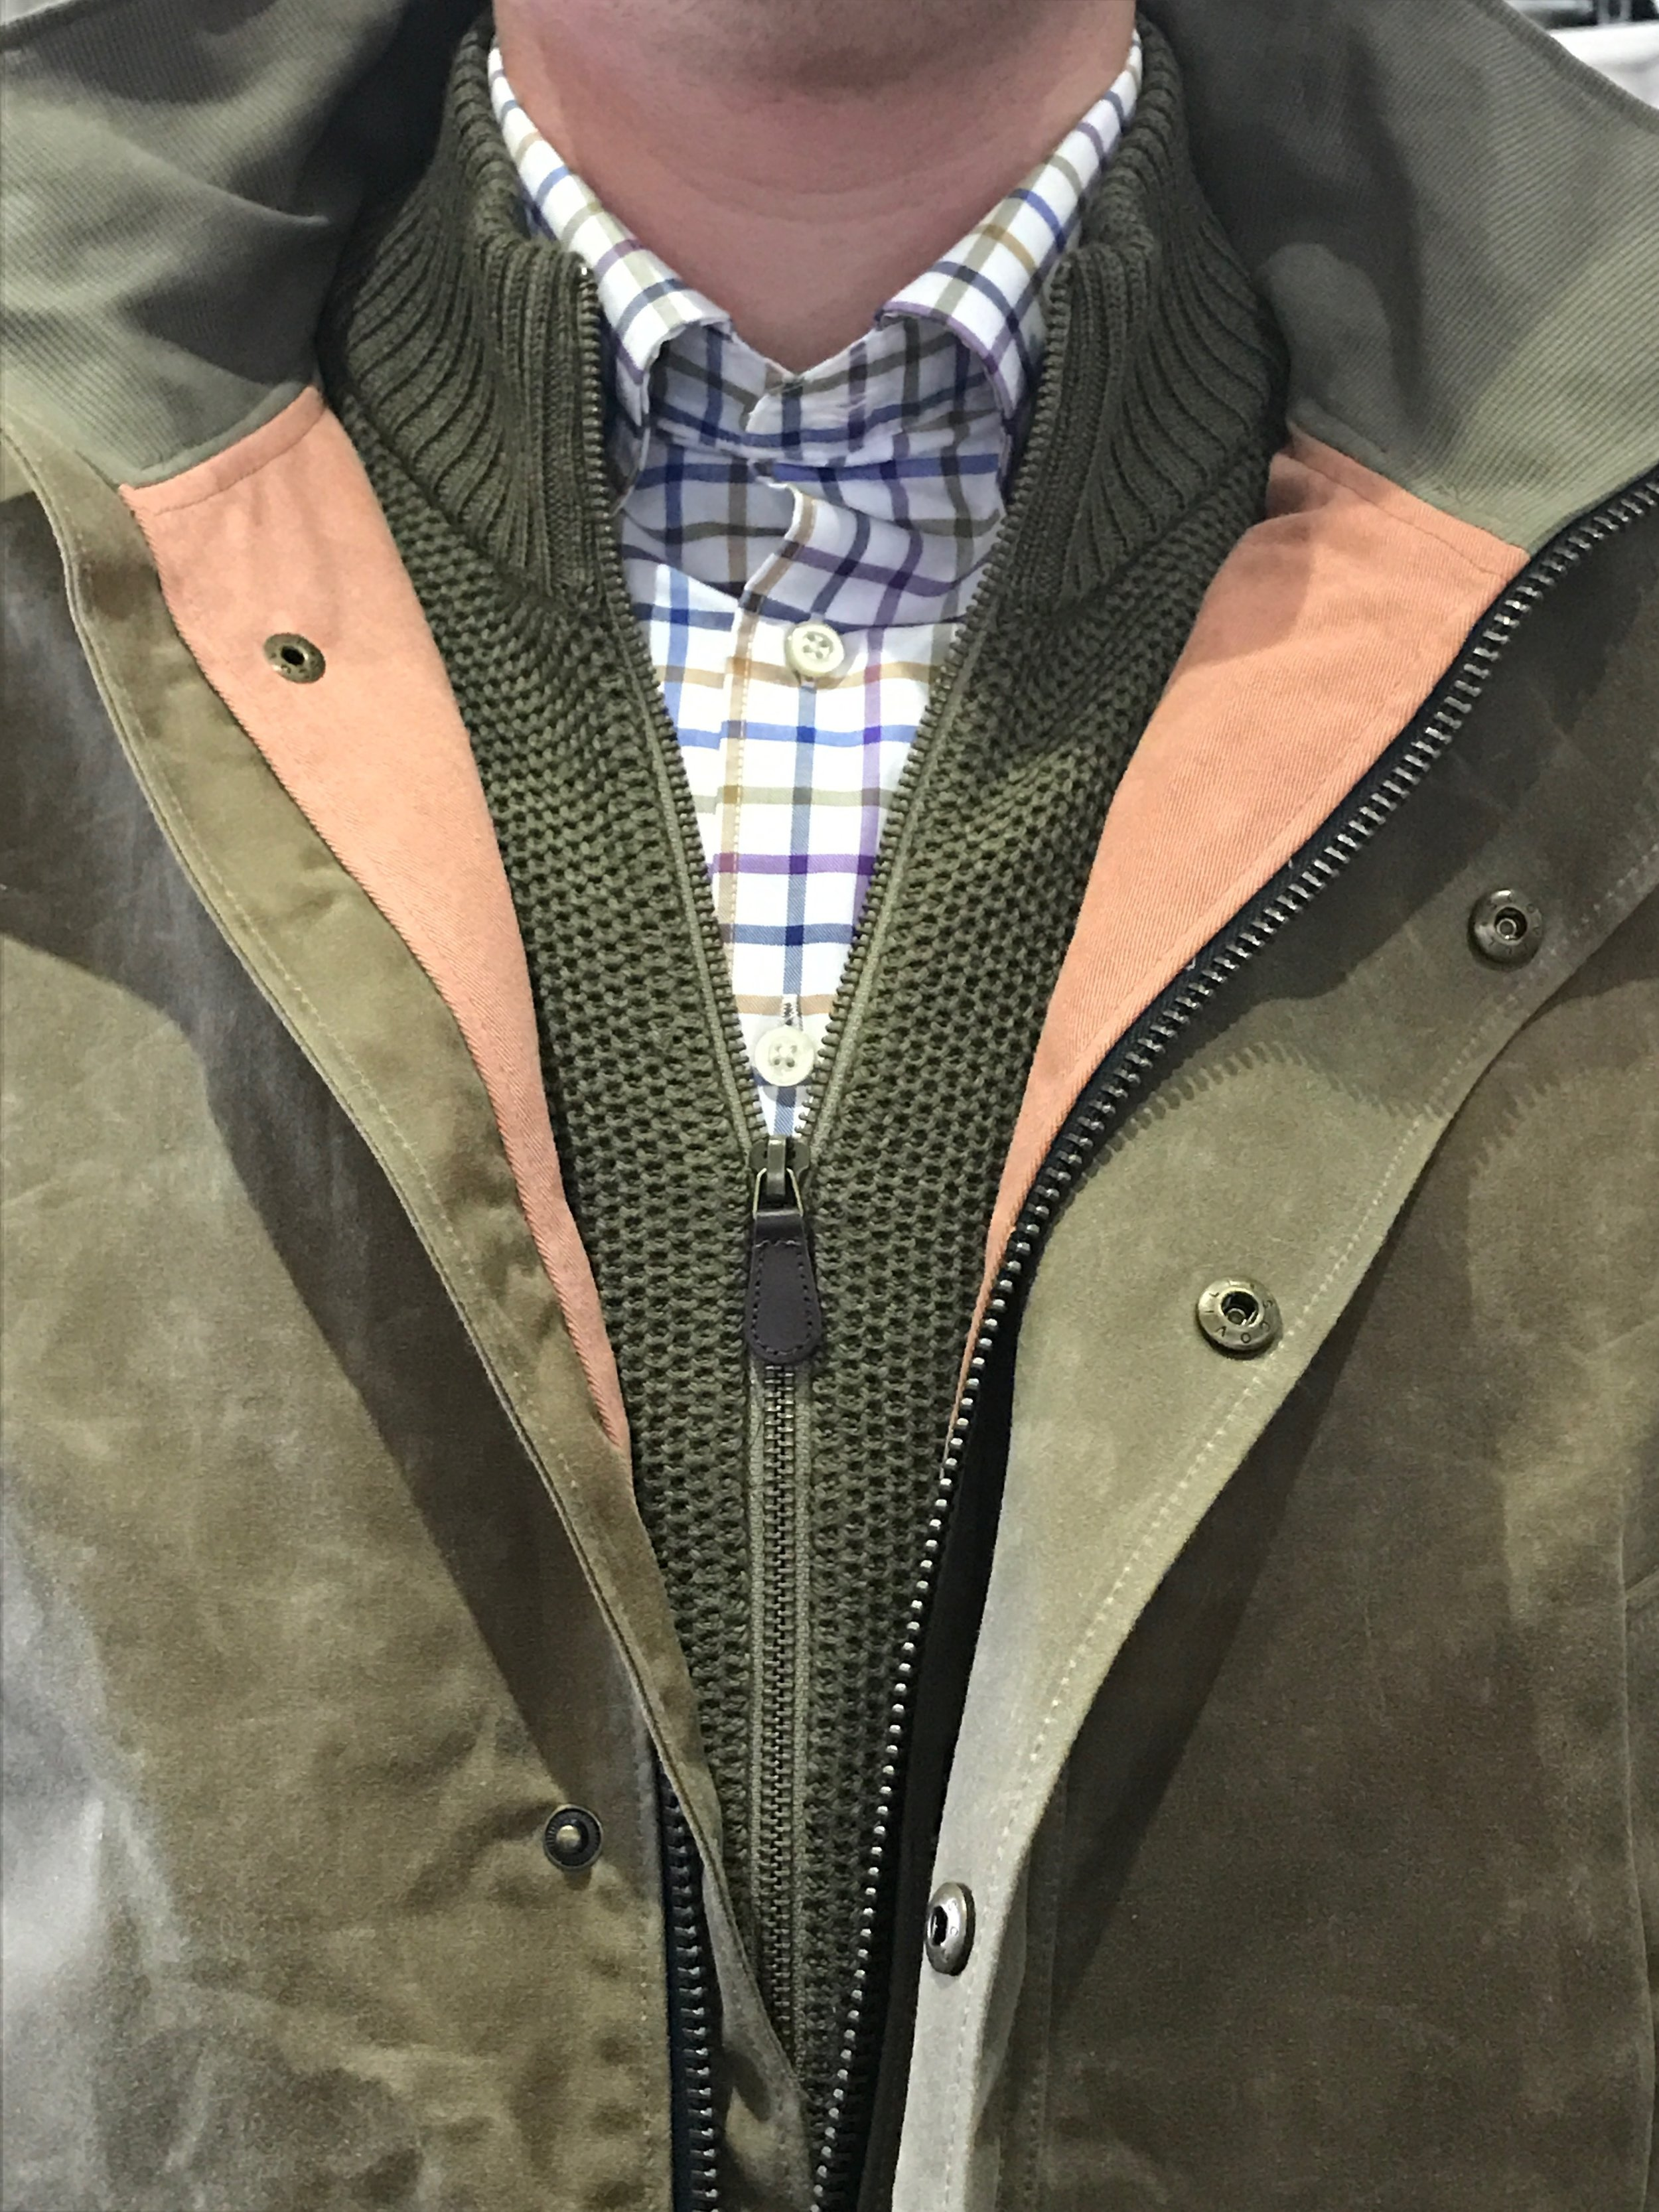 Layers barbour.JPG